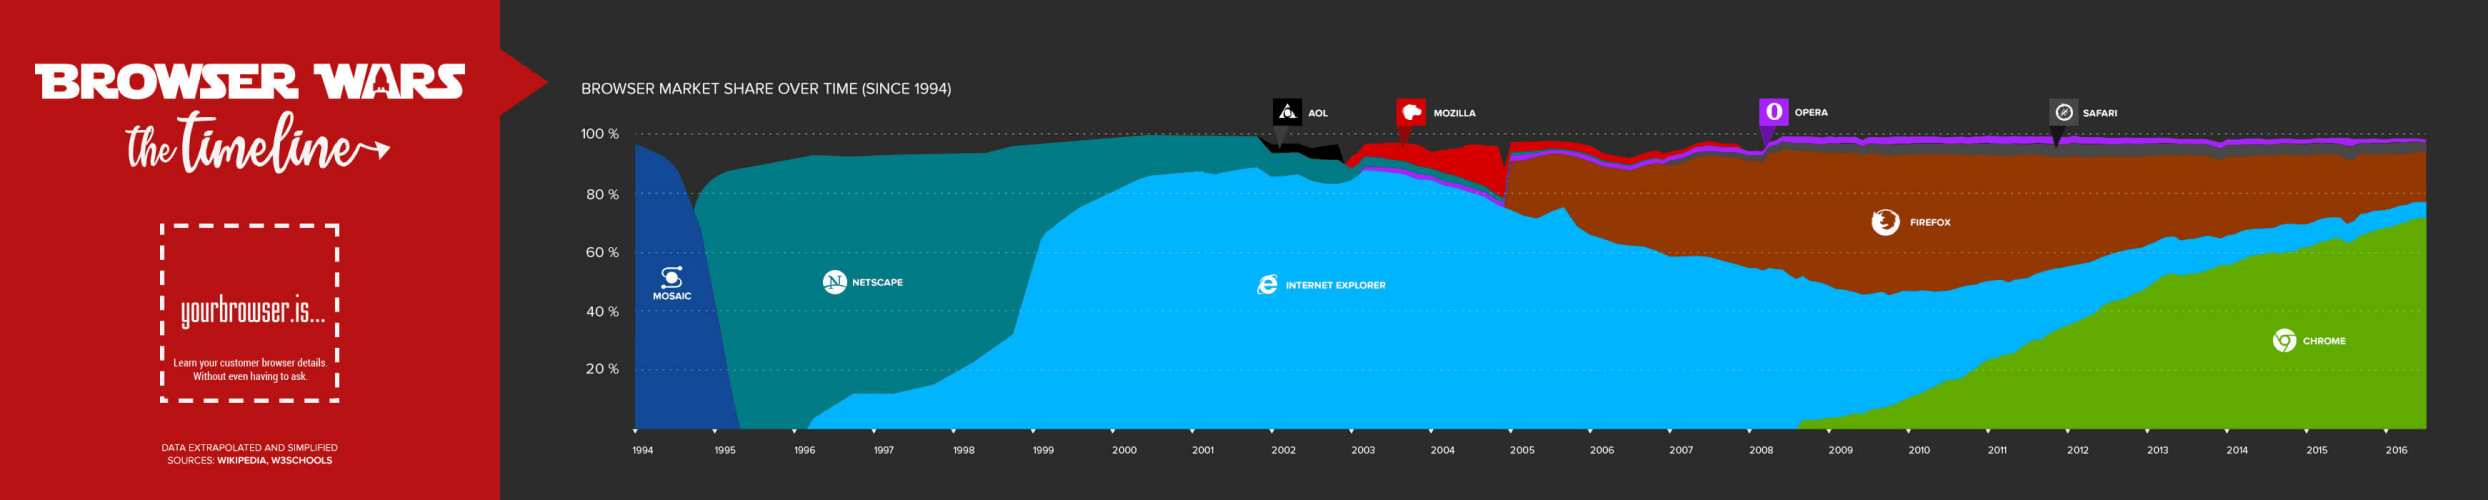 Browser Wars: The Timeline (infographic)